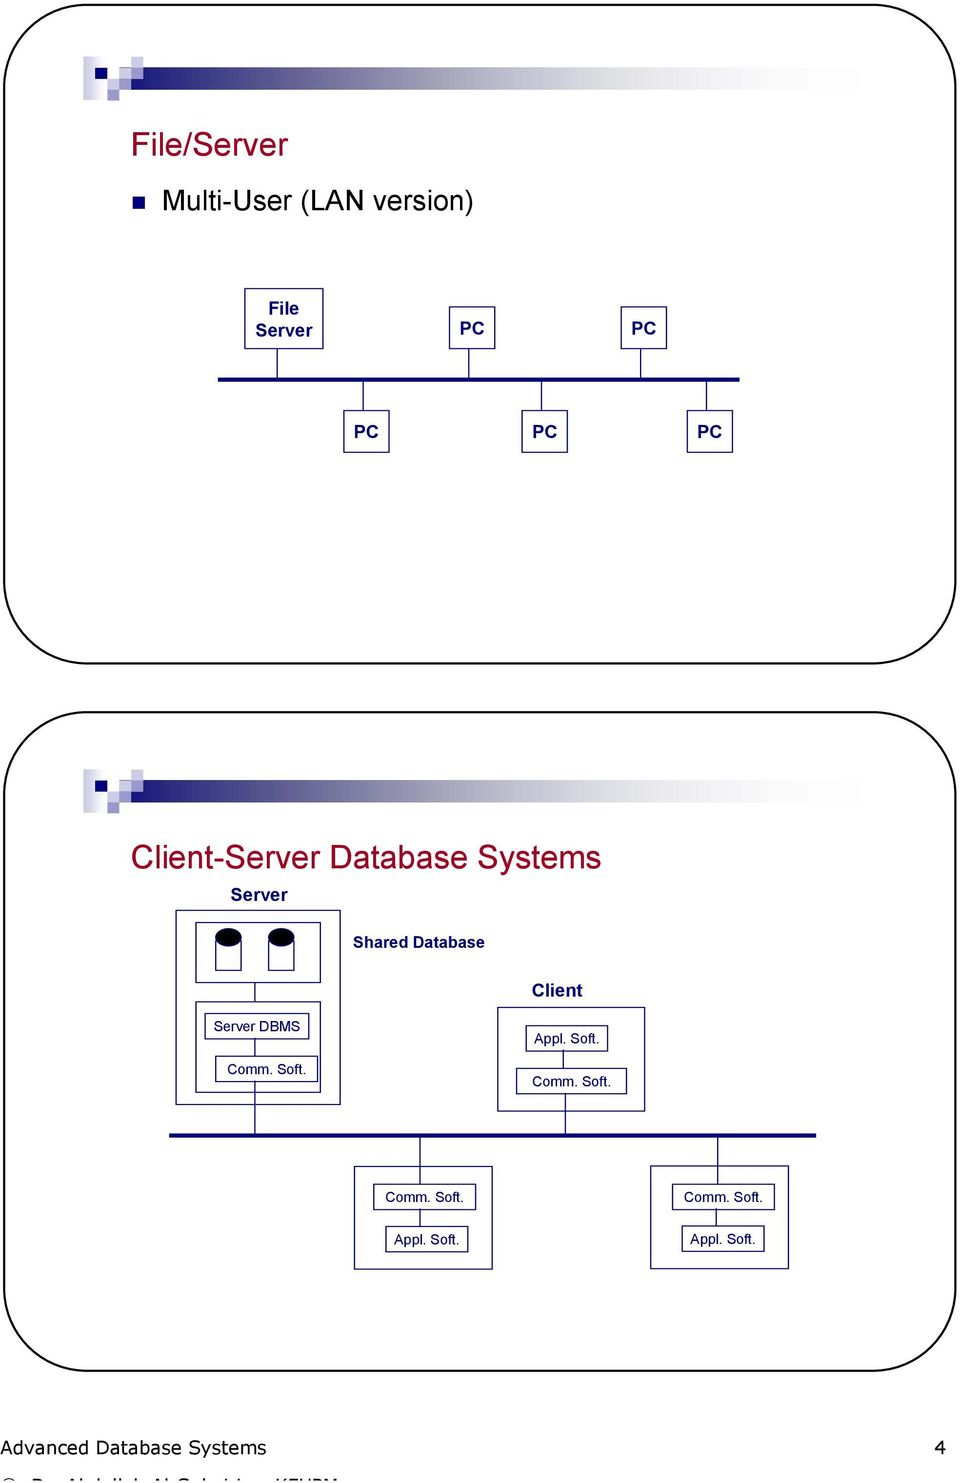 Client Server DBMS Comm. Soft. Appl. Soft. Comm. Soft. Comm. Soft. Appl. Soft. Comm. Soft. Appl. Soft. Advanced Database Systems 4